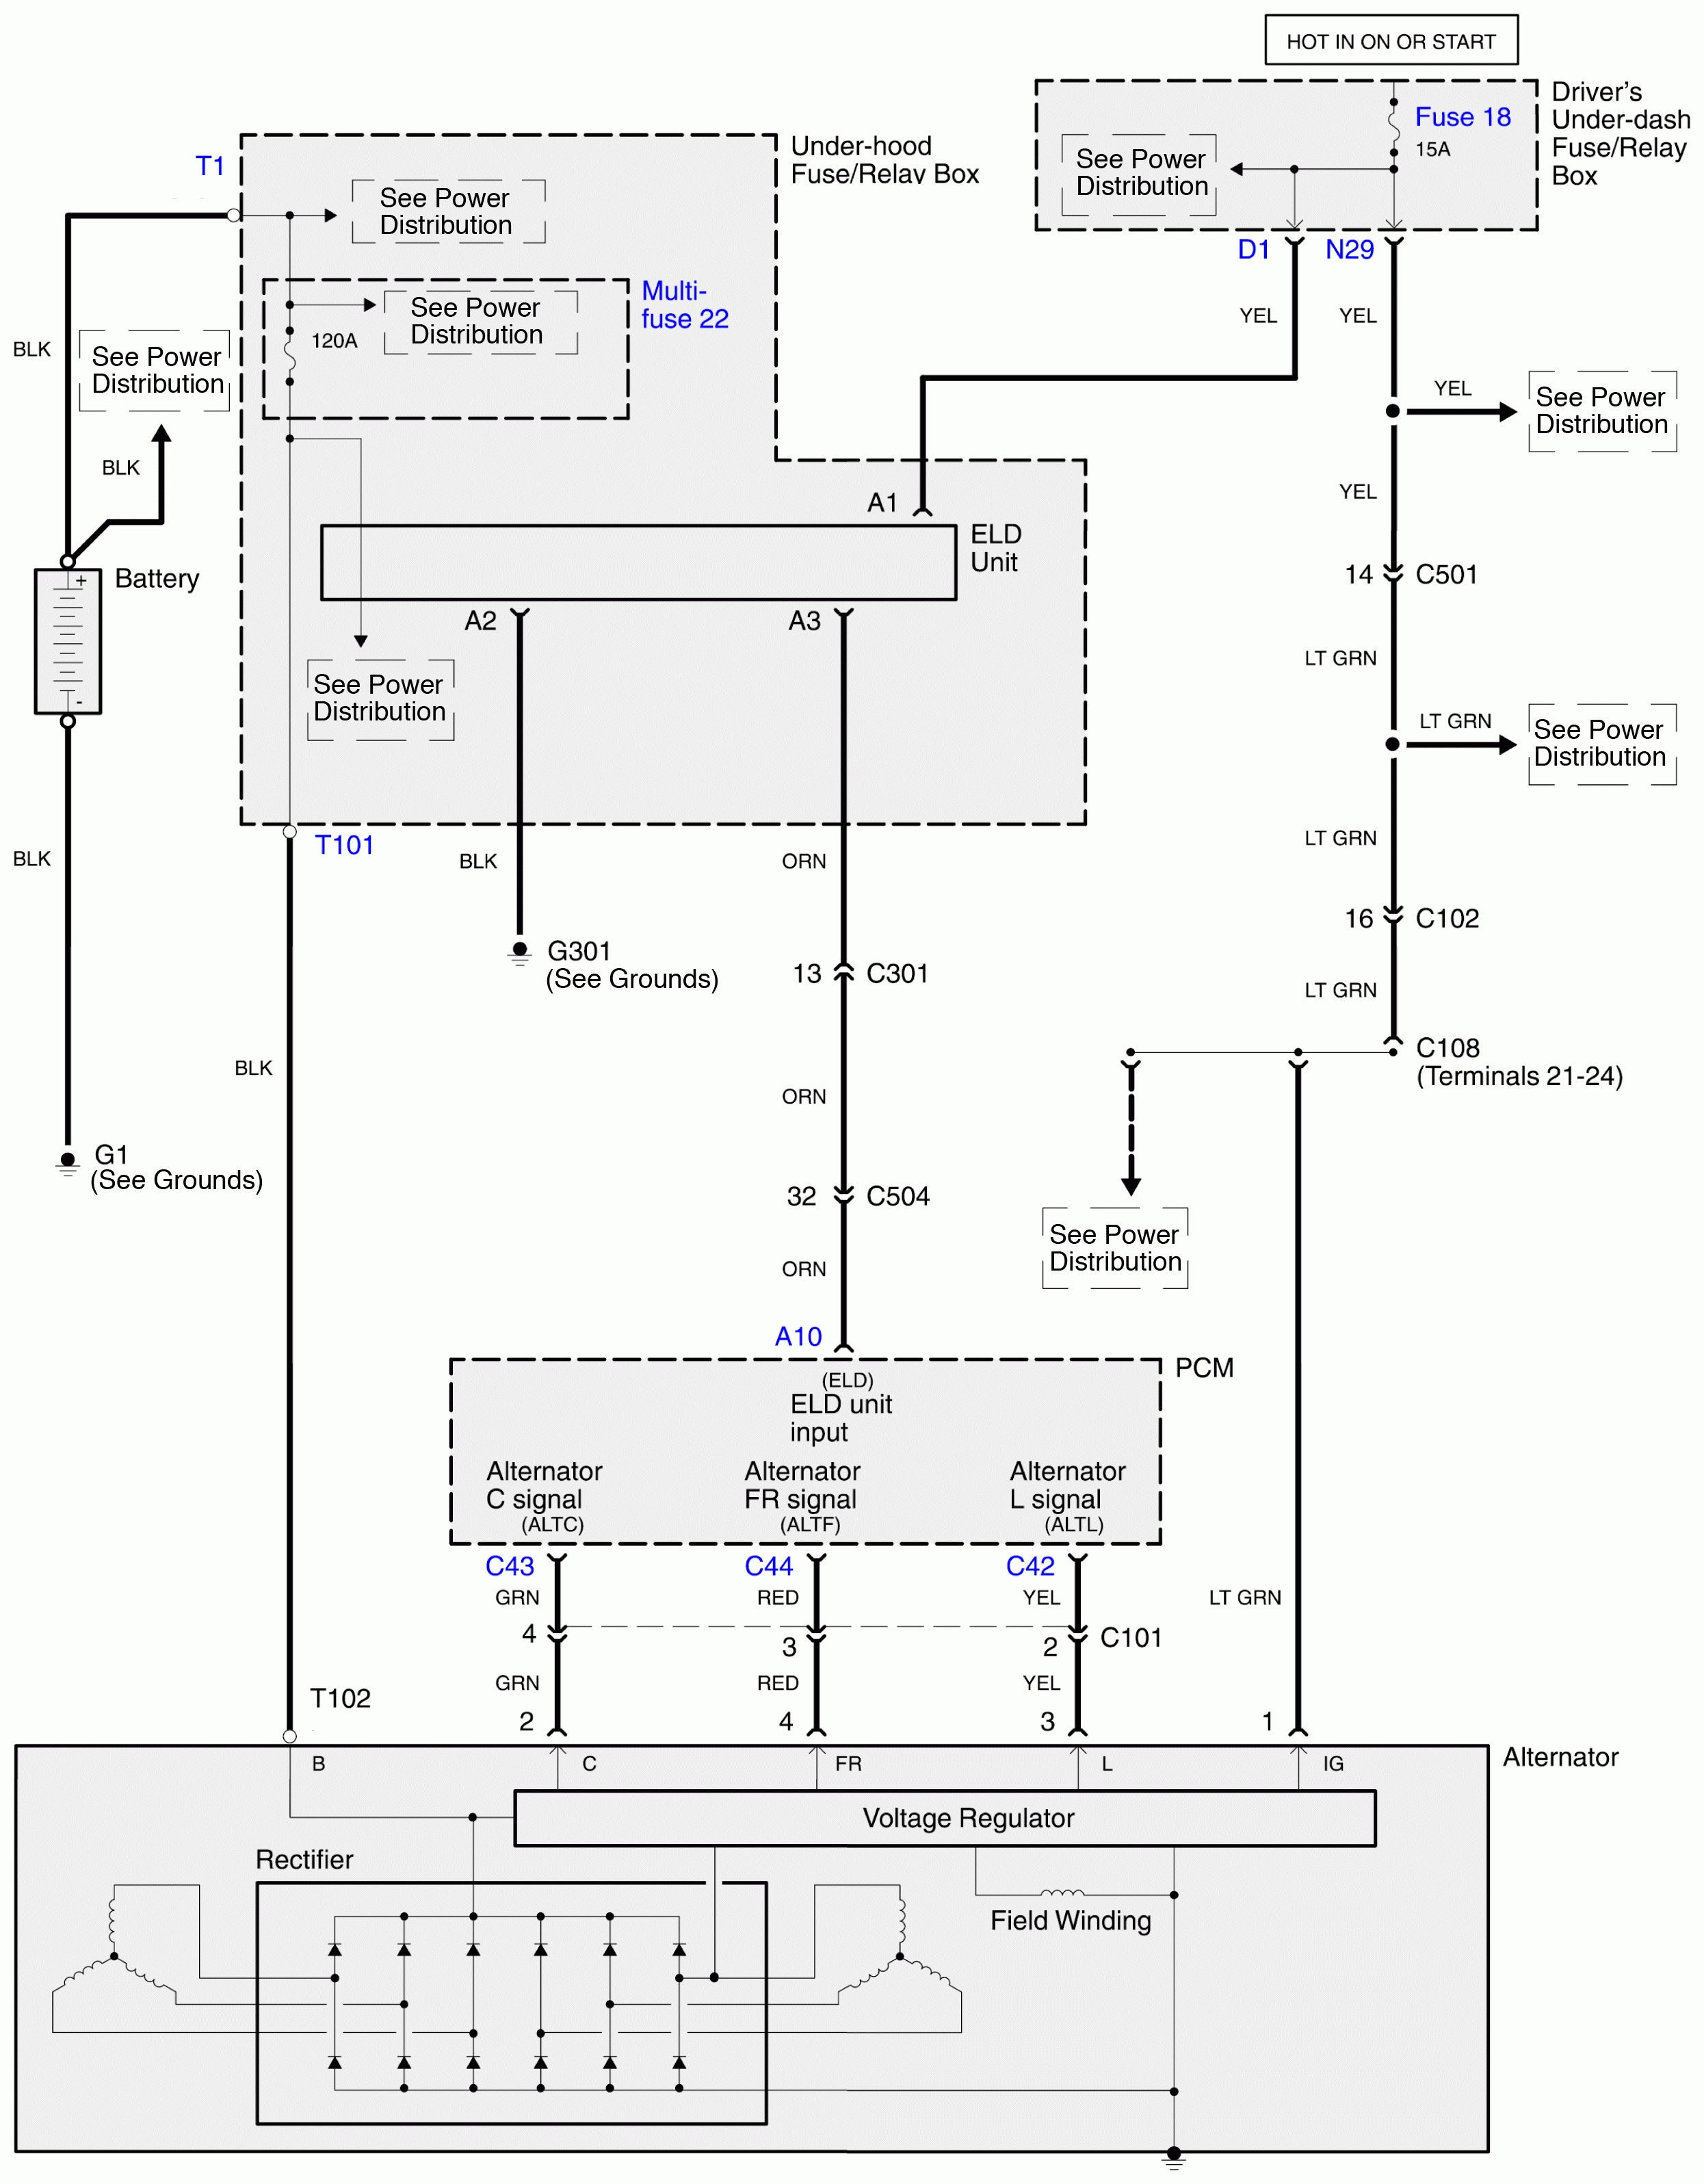 2004 ford taurus fuse box diagram pdf